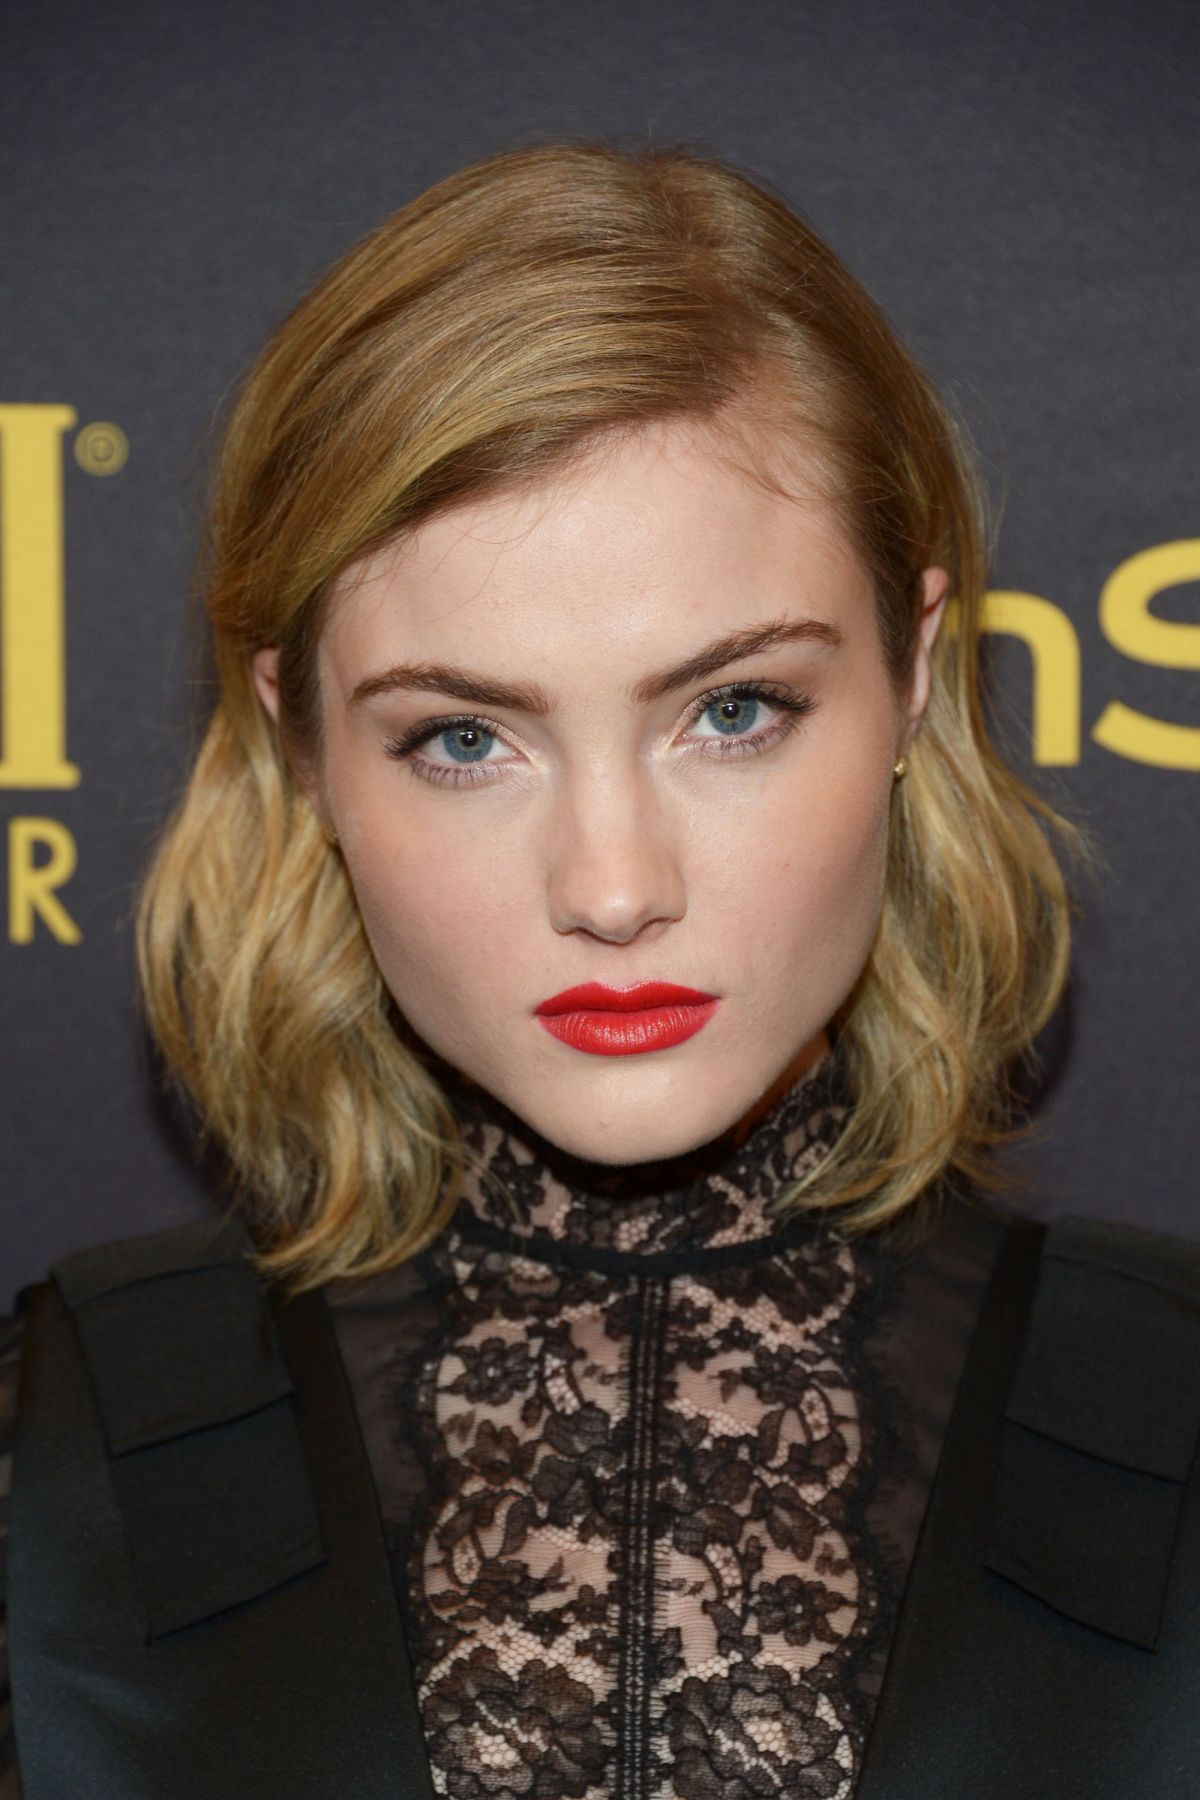 SKYLER SAMUELS at HFPA & Instyle's Celebration of Golden Globe Awards Season in Los Angeles 11/10/2016